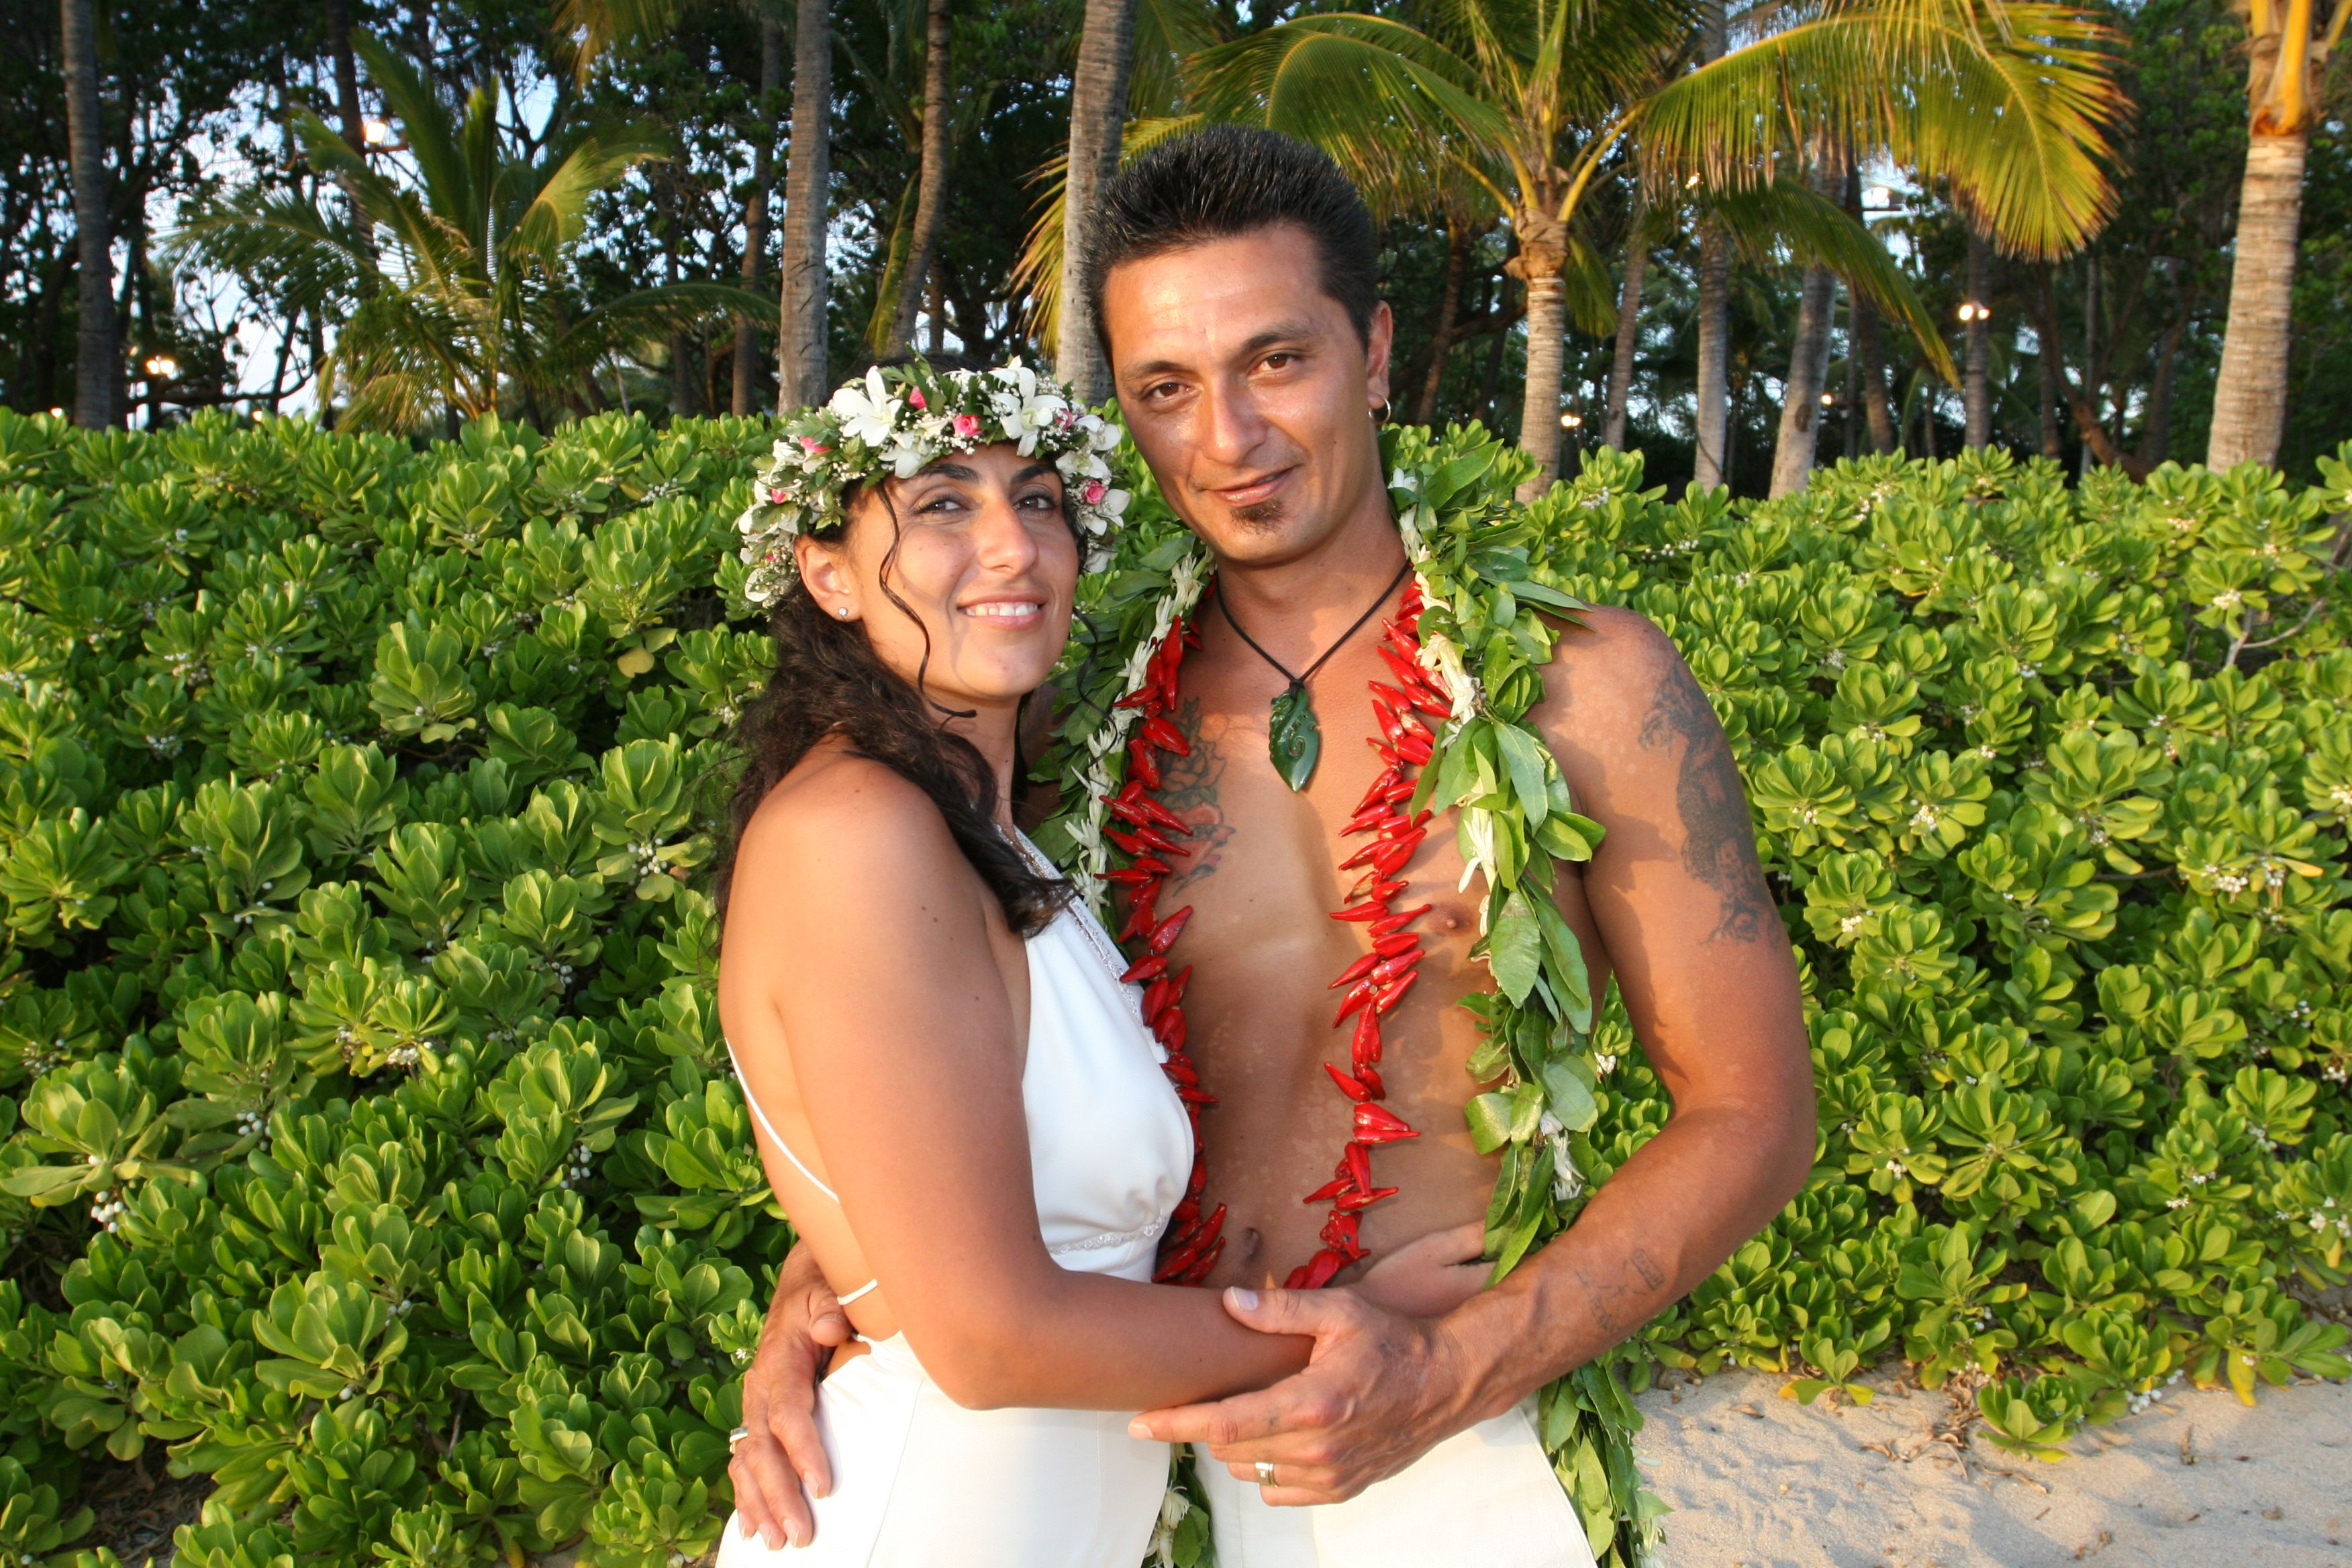 Wedding Planner For Your Oahu Kauai Or Vow Renewal Ceremony